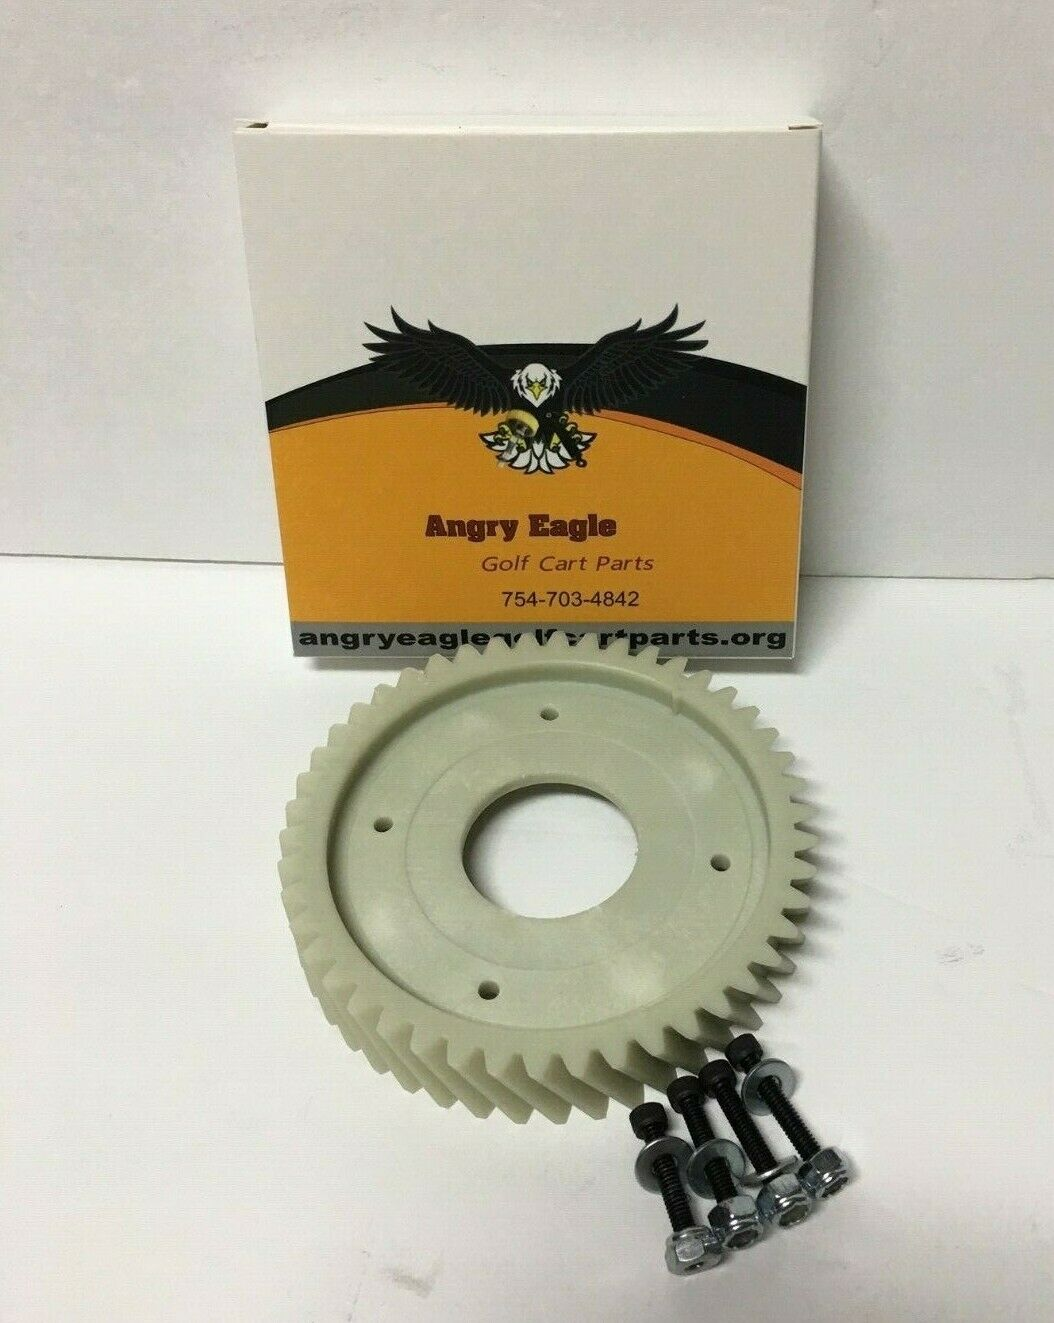 Camshaft replacement gears 1997 and up FE290 - 46 Teeth